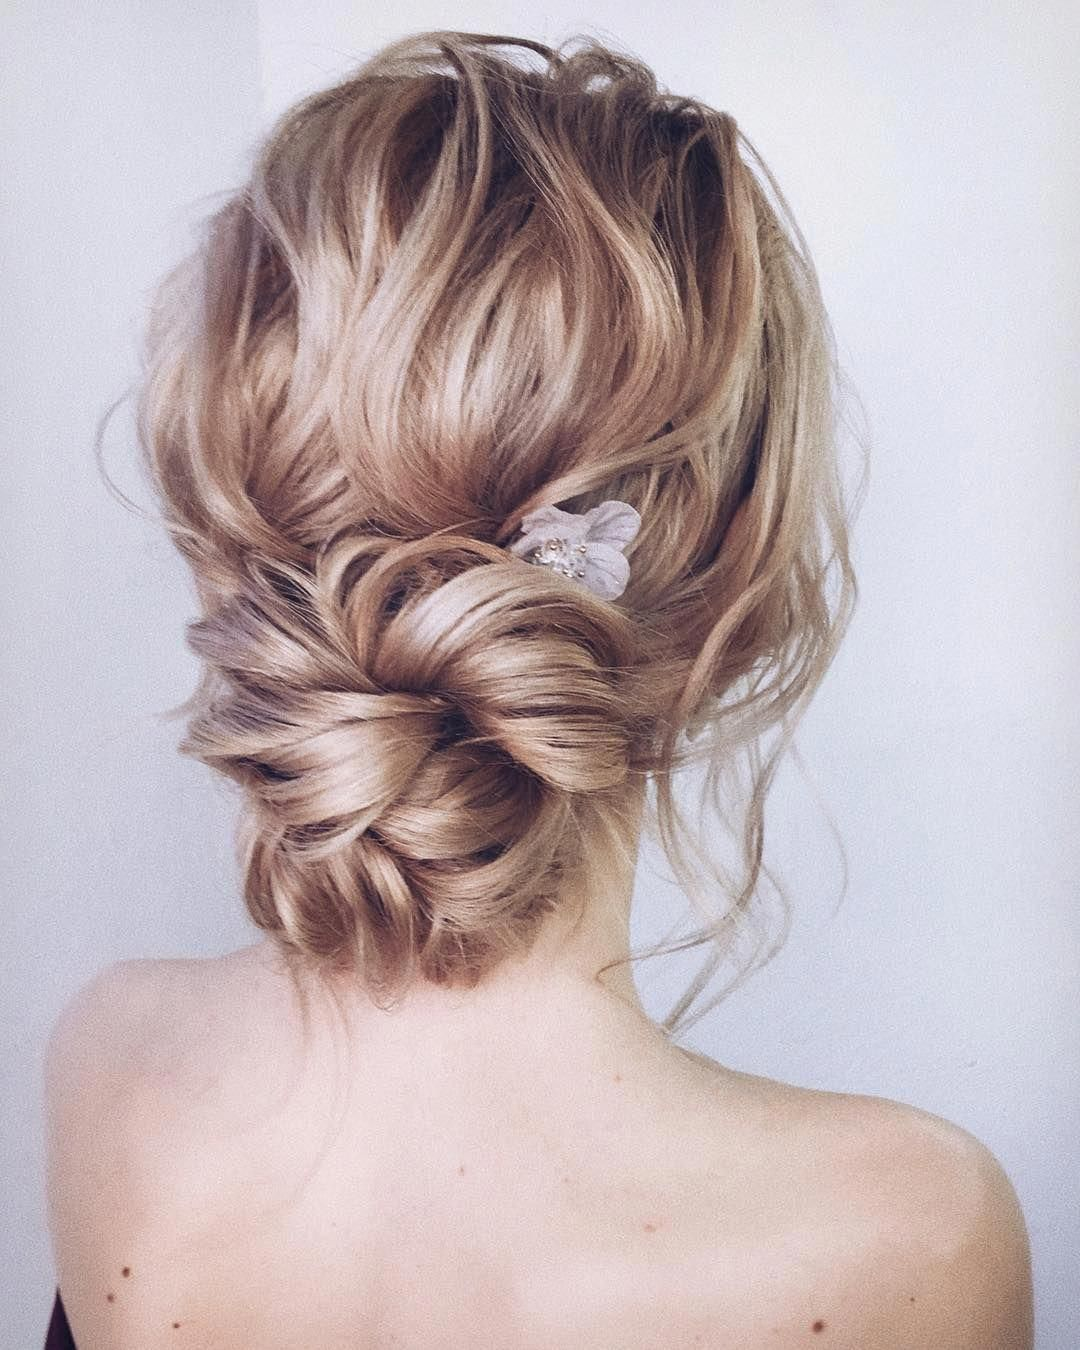 Hairstyle For Wedding For Long Hair: Wedding Hairstyles For Older Women #Weddinghairstyles In